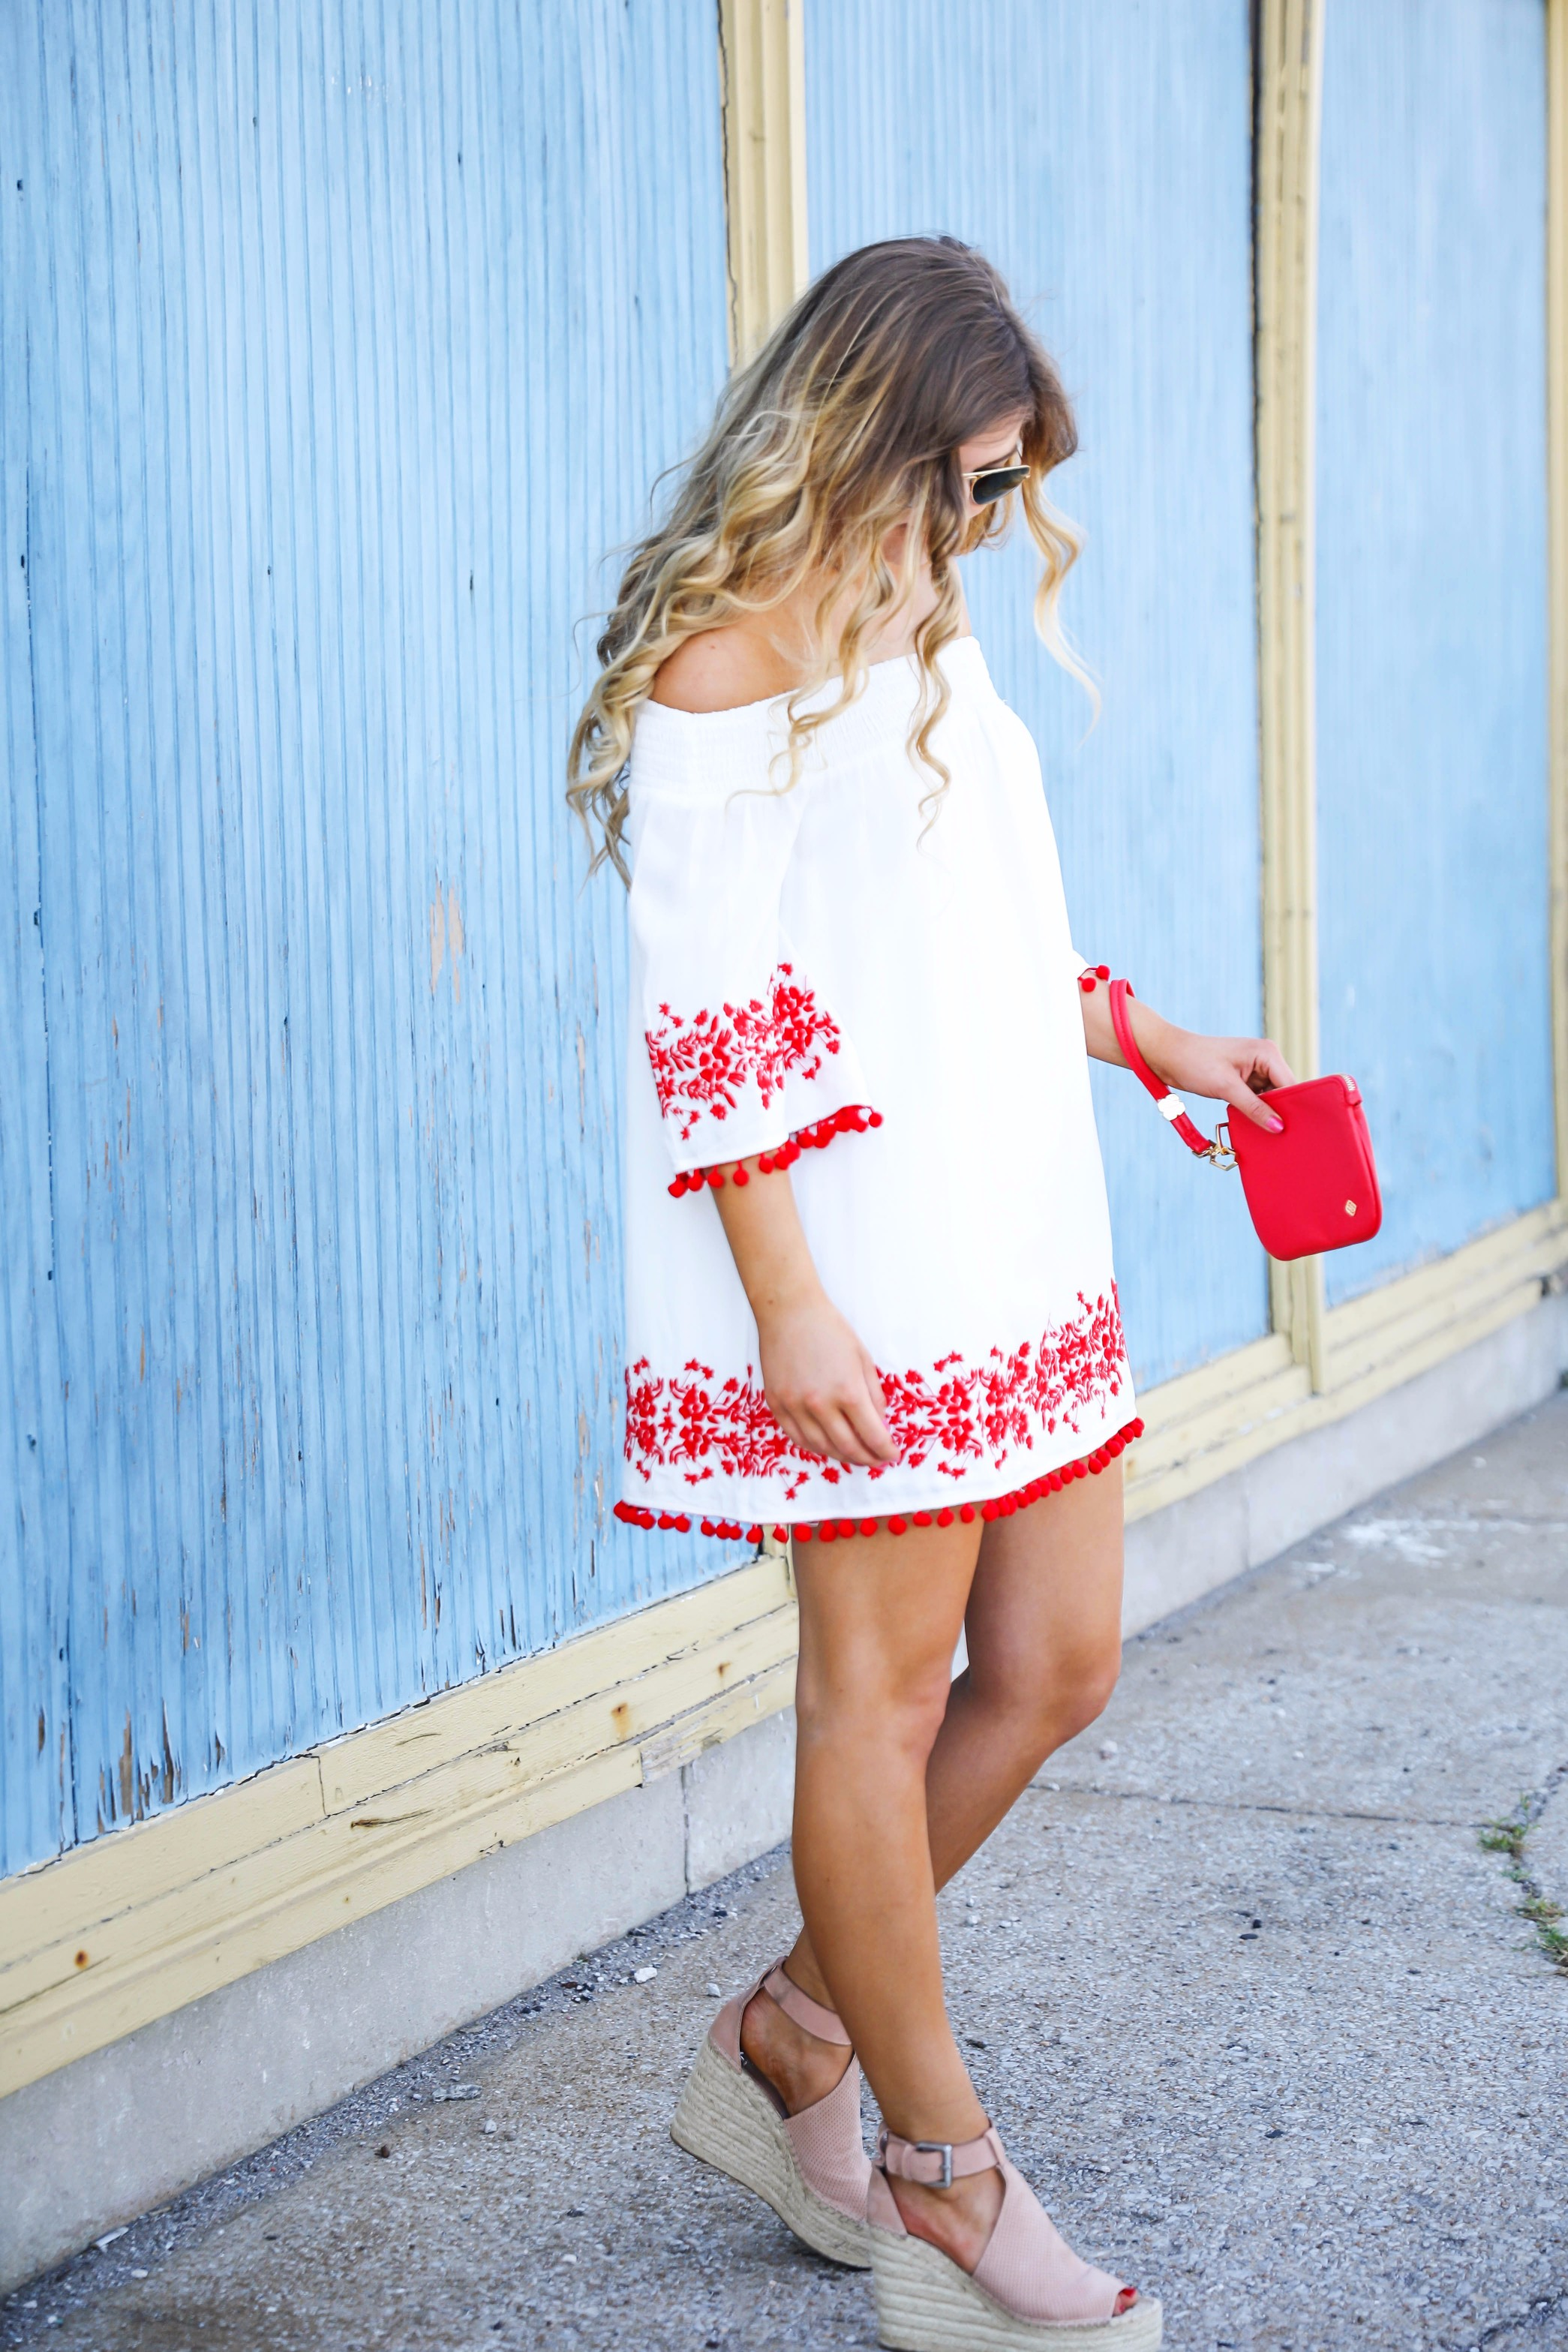 Looking for the perfect fourth of july or summer outfit? This red pom pom off the shoulder dress is so cute with it's embroidered hem! I wore this on the fourth of july! Featured on fashion blog daily dose of charm by lauren lindmark